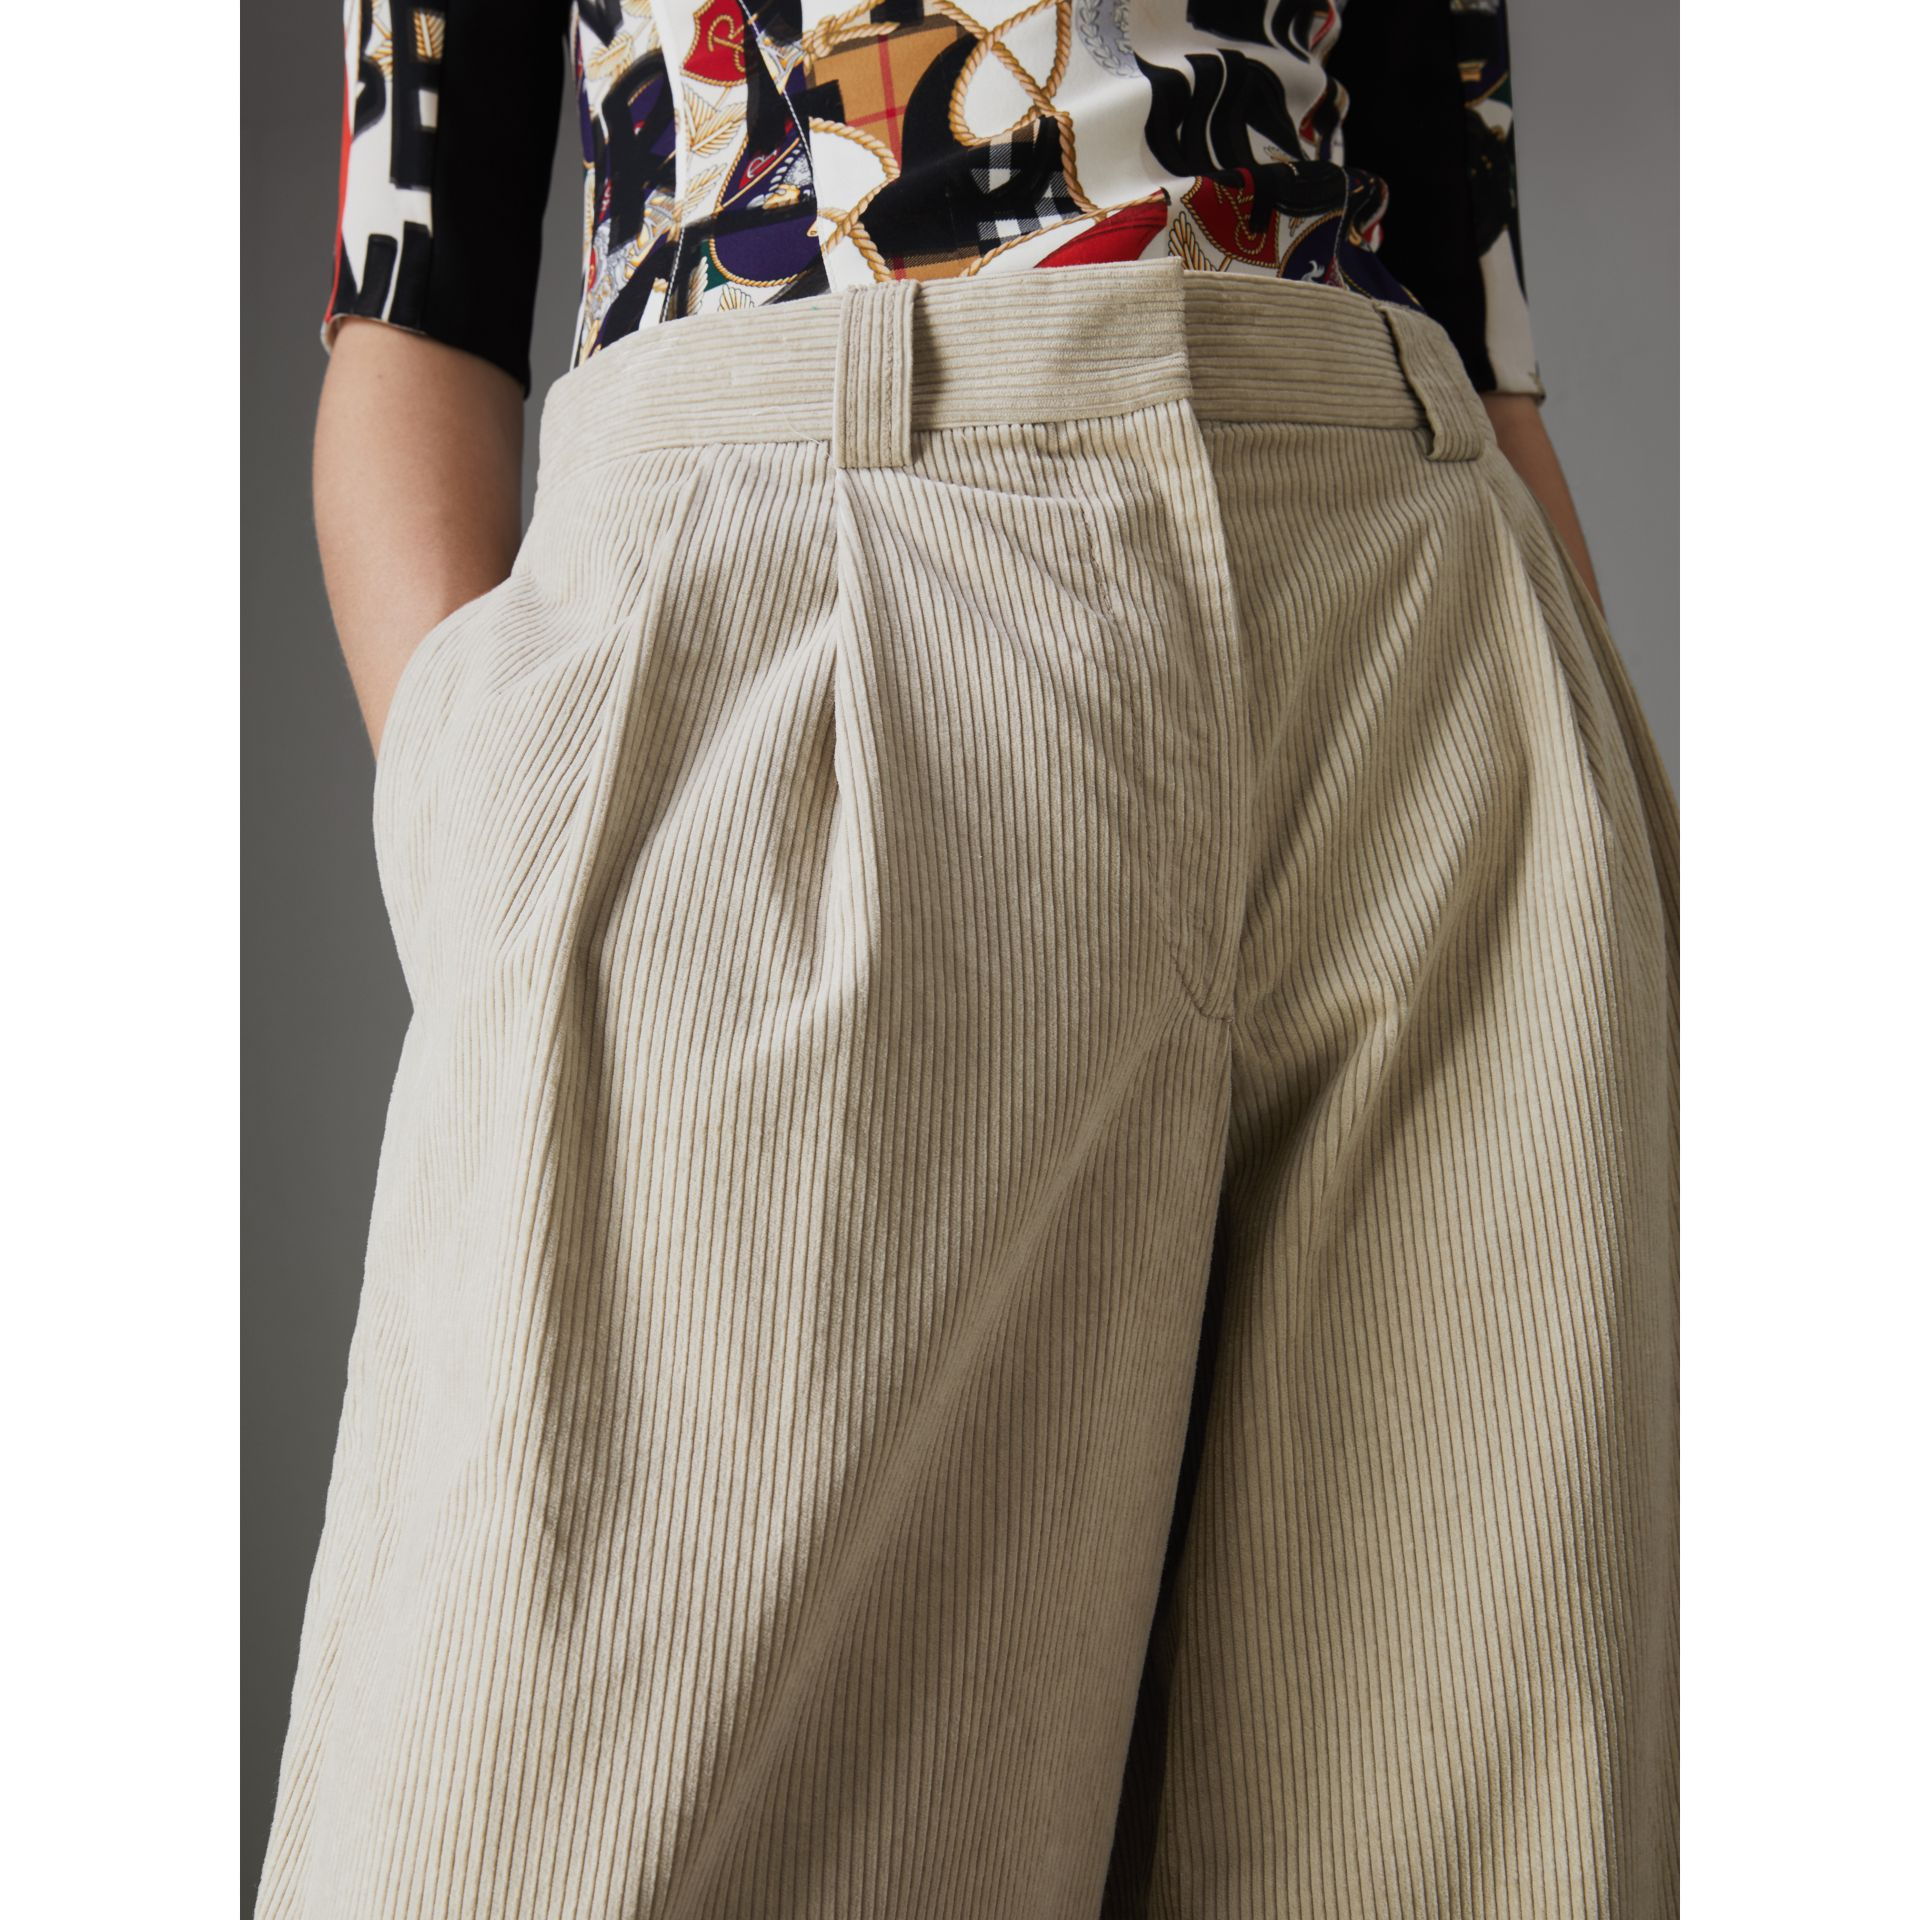 Roll-up Cuff Cotton Corduroy Trousers in Stone - Women | Burberry Canada - gallery image 1